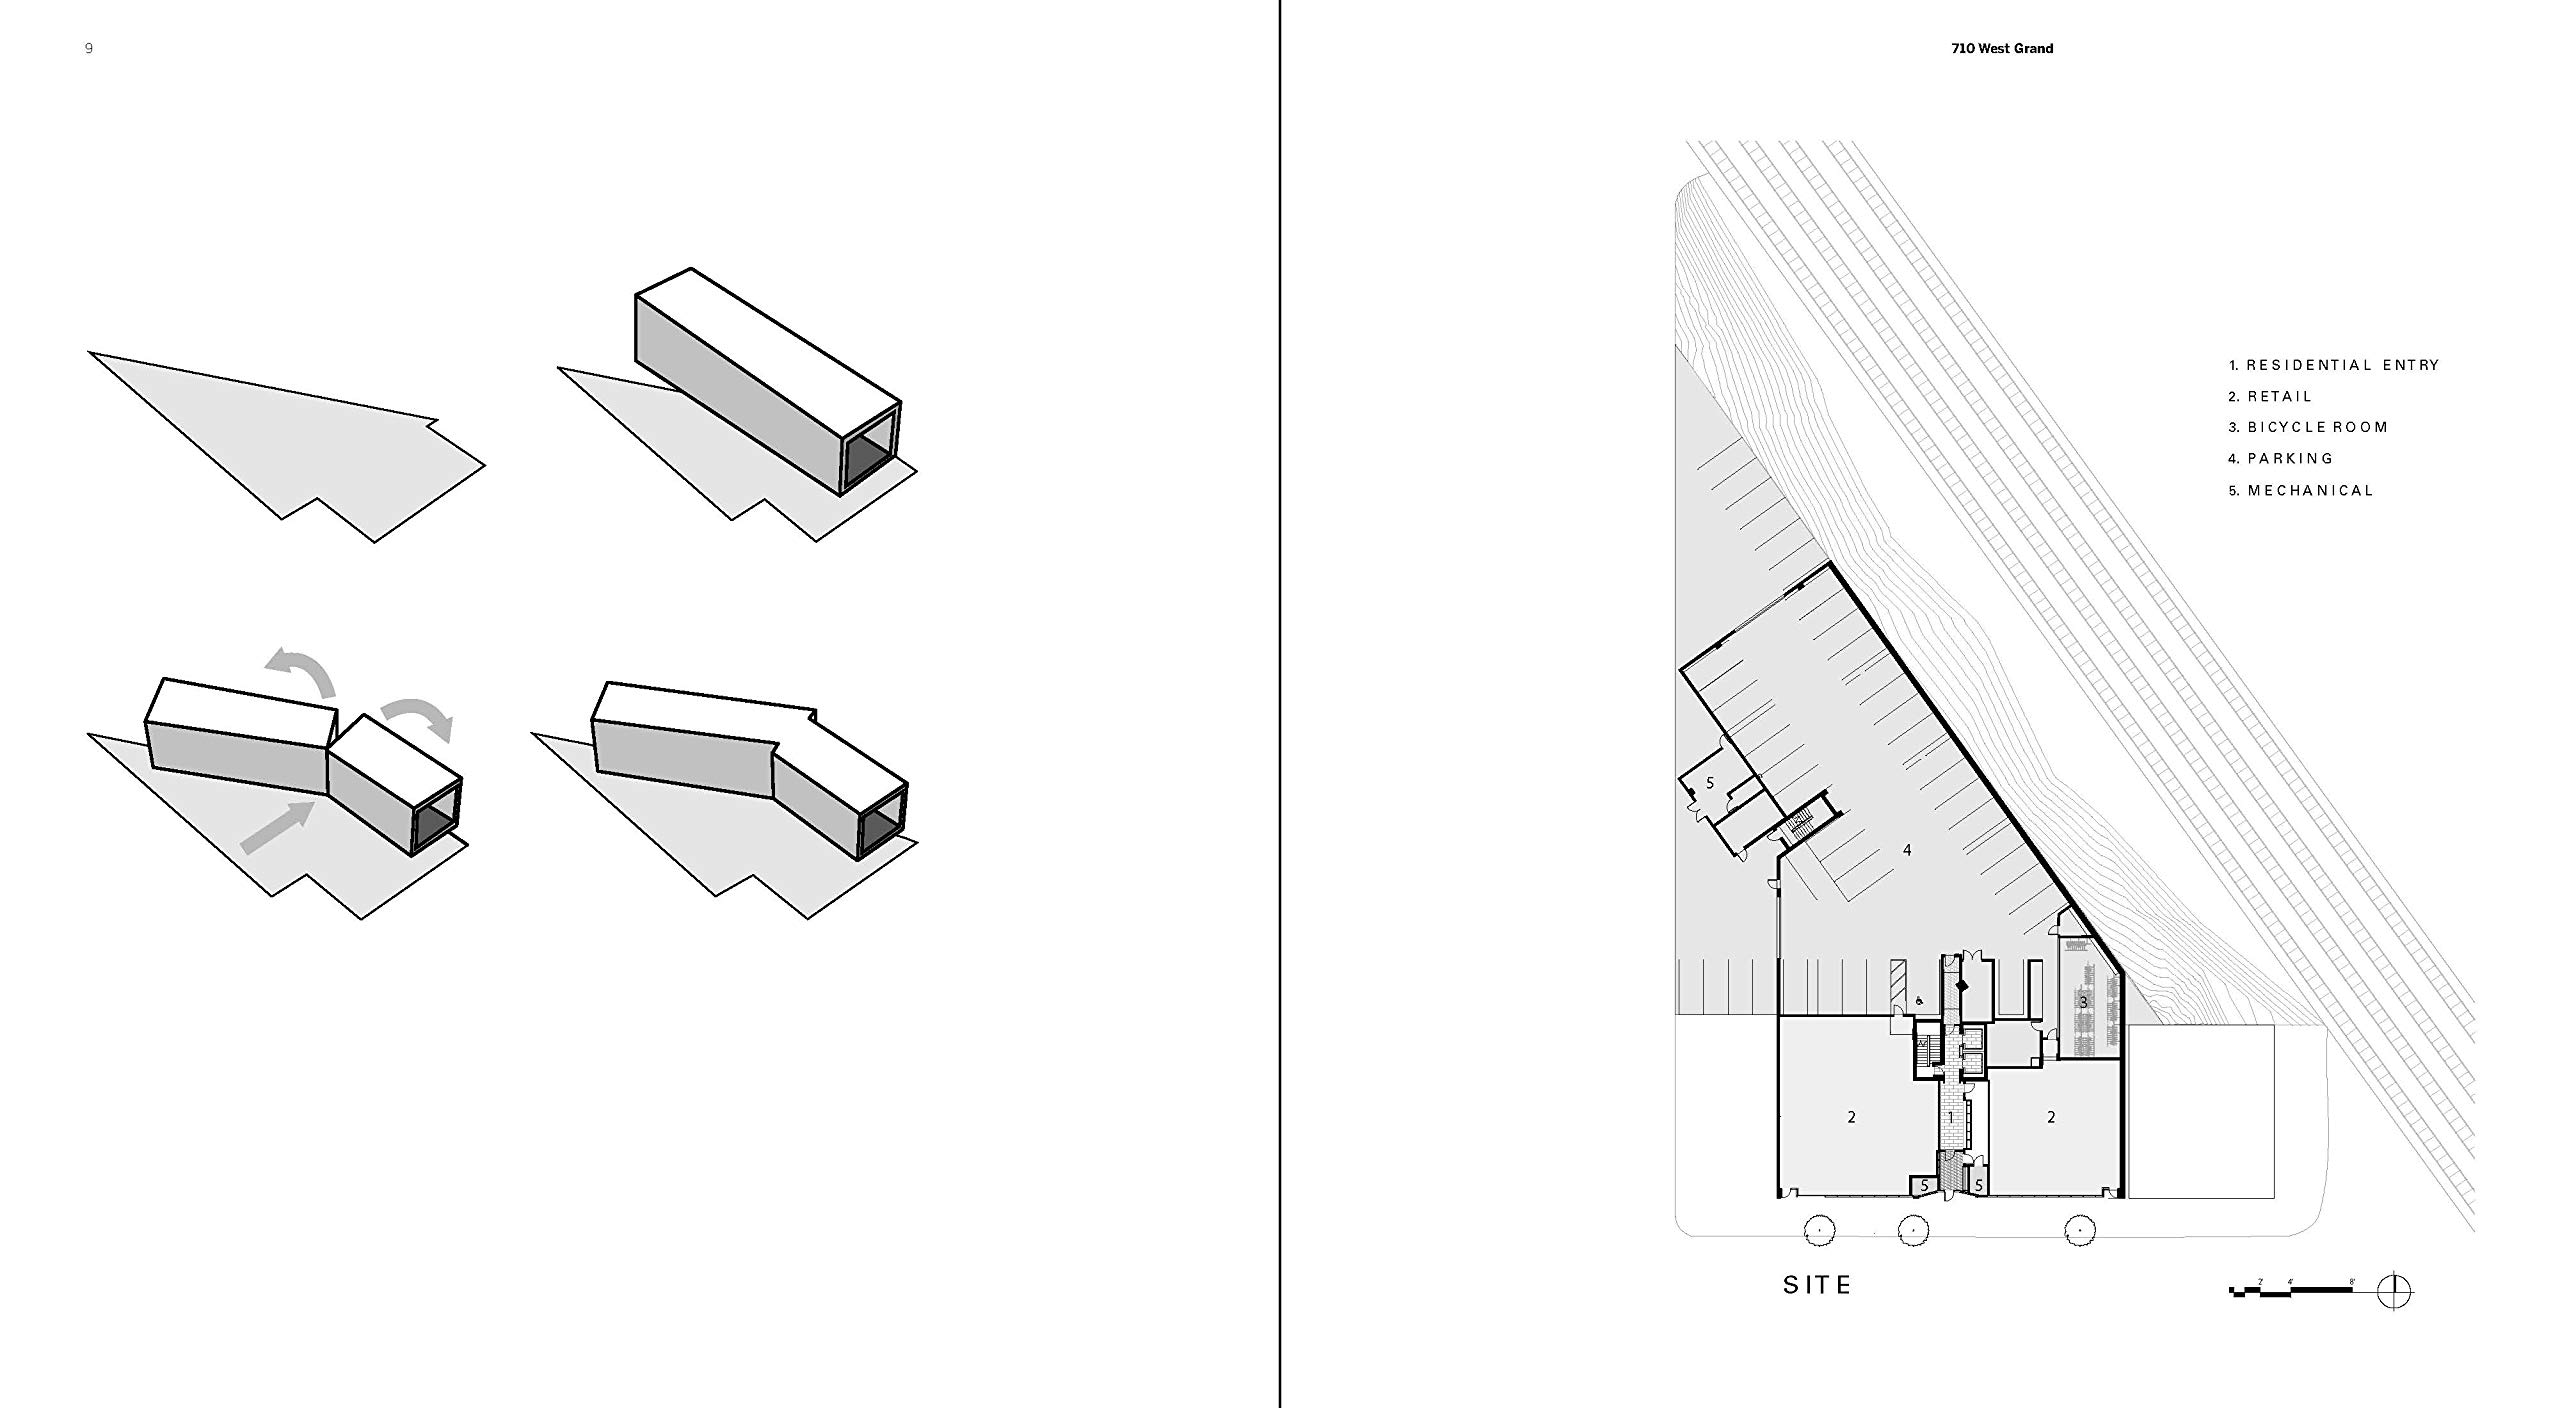 Brininstool + Lynch: Making Architecture, Monacelli press